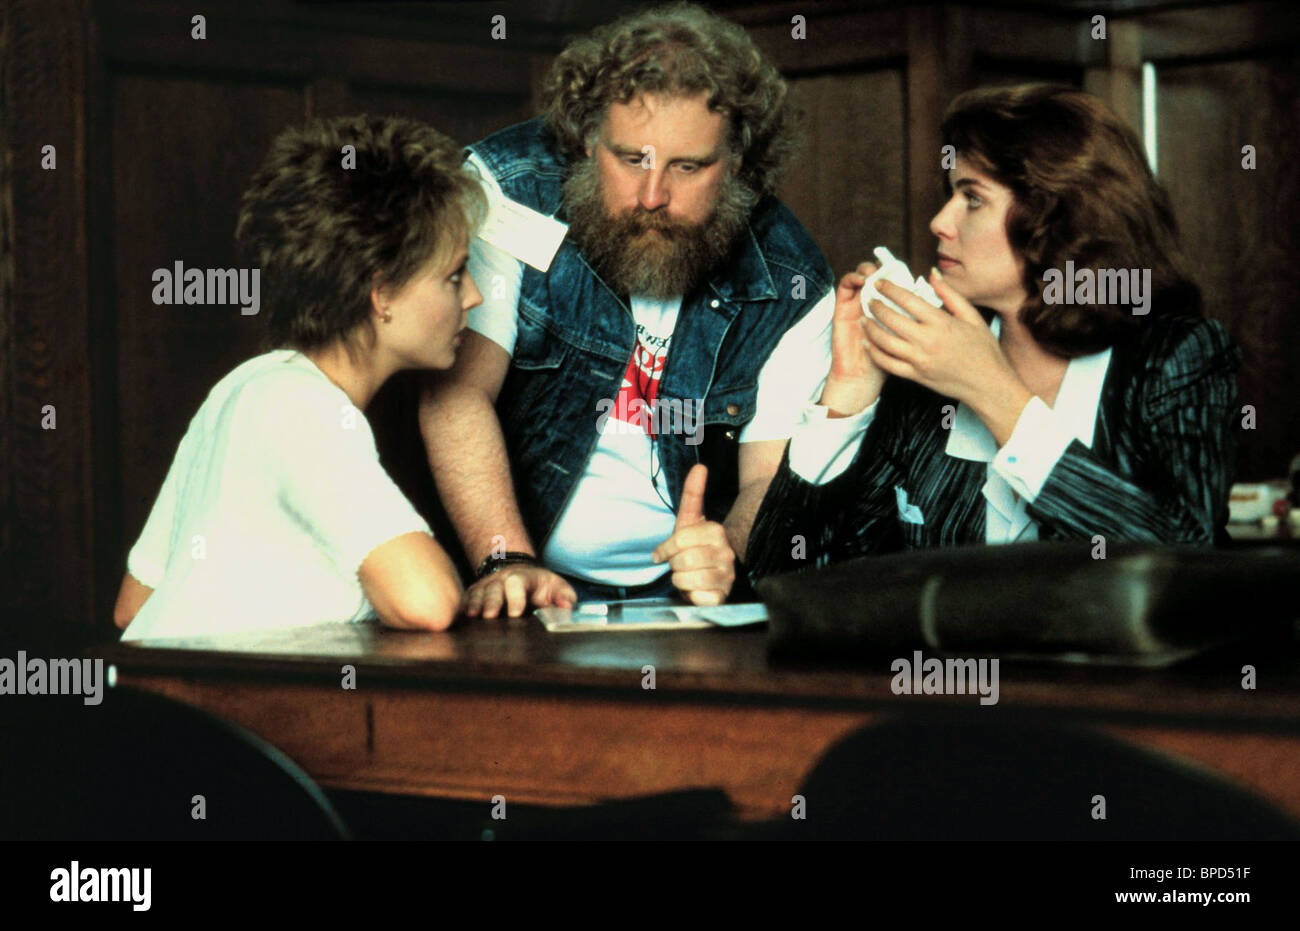 kelly mcgillis jodie foster the accused 1988 stock photo jodie foster jonathan kaplan kelly mcgillis the accused 1988 stock photo